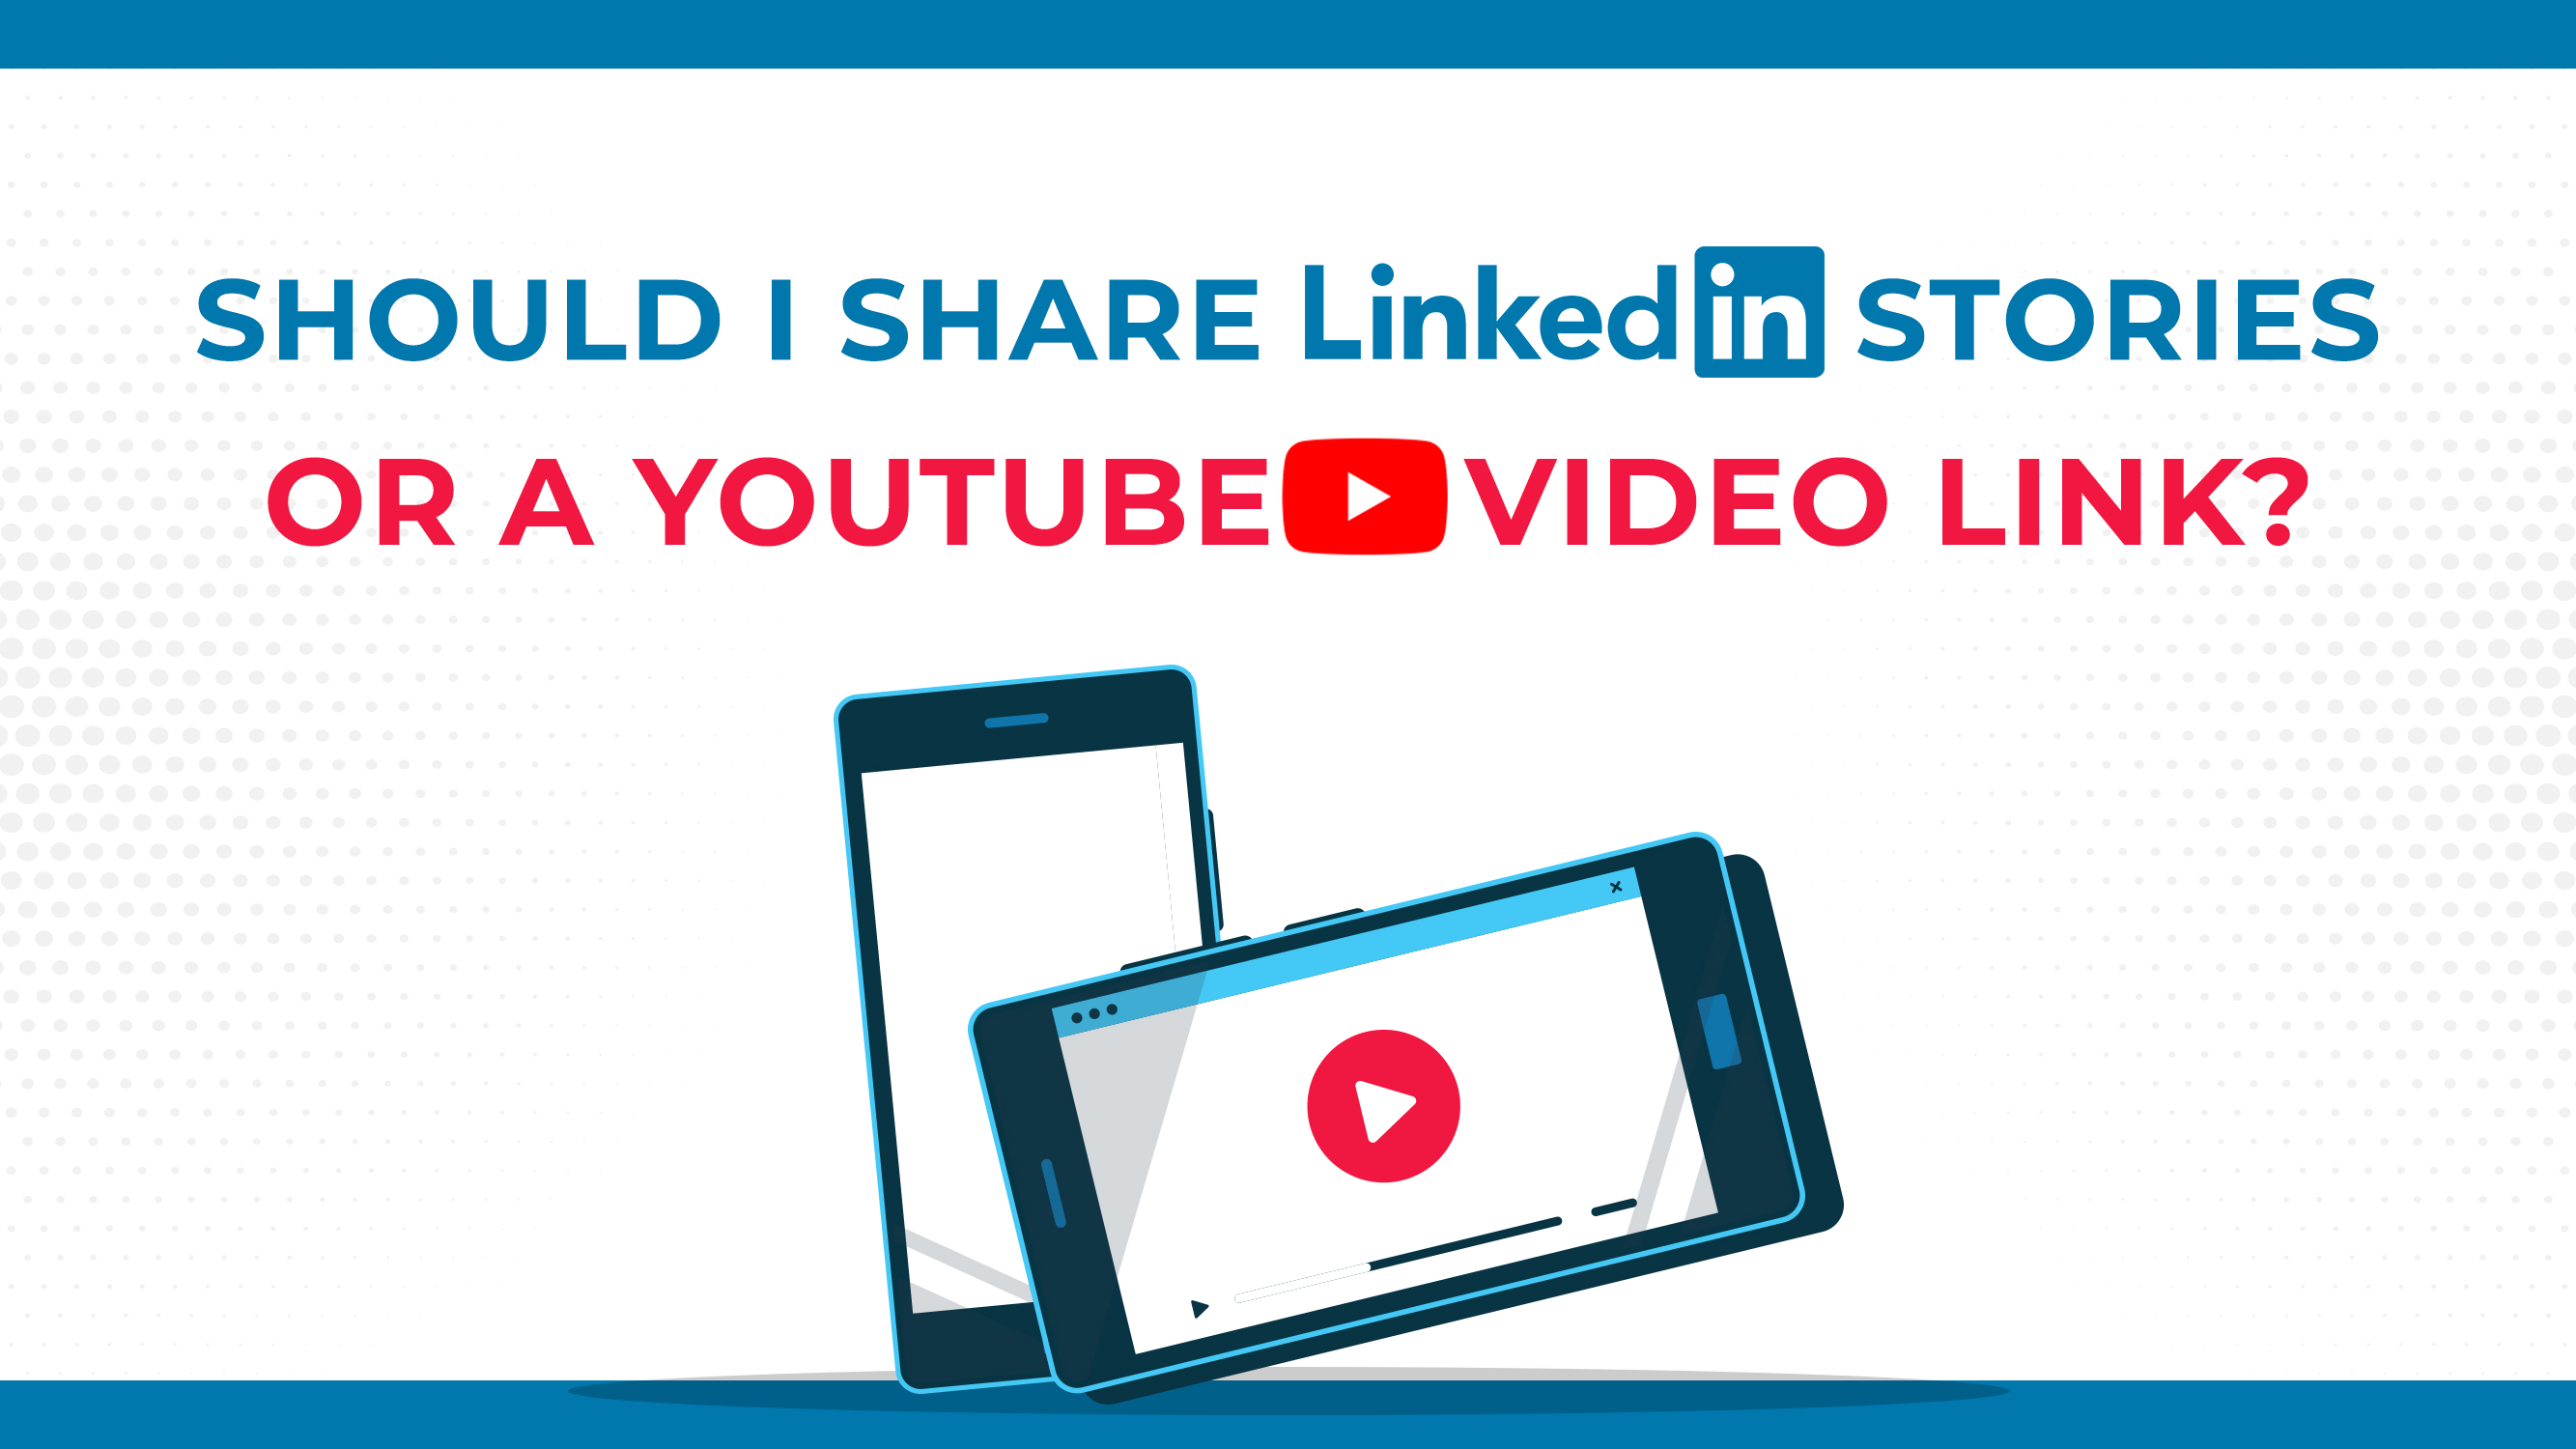 ¿Debería compartir historias de LinkedIn o un enlace de video de YouTube?